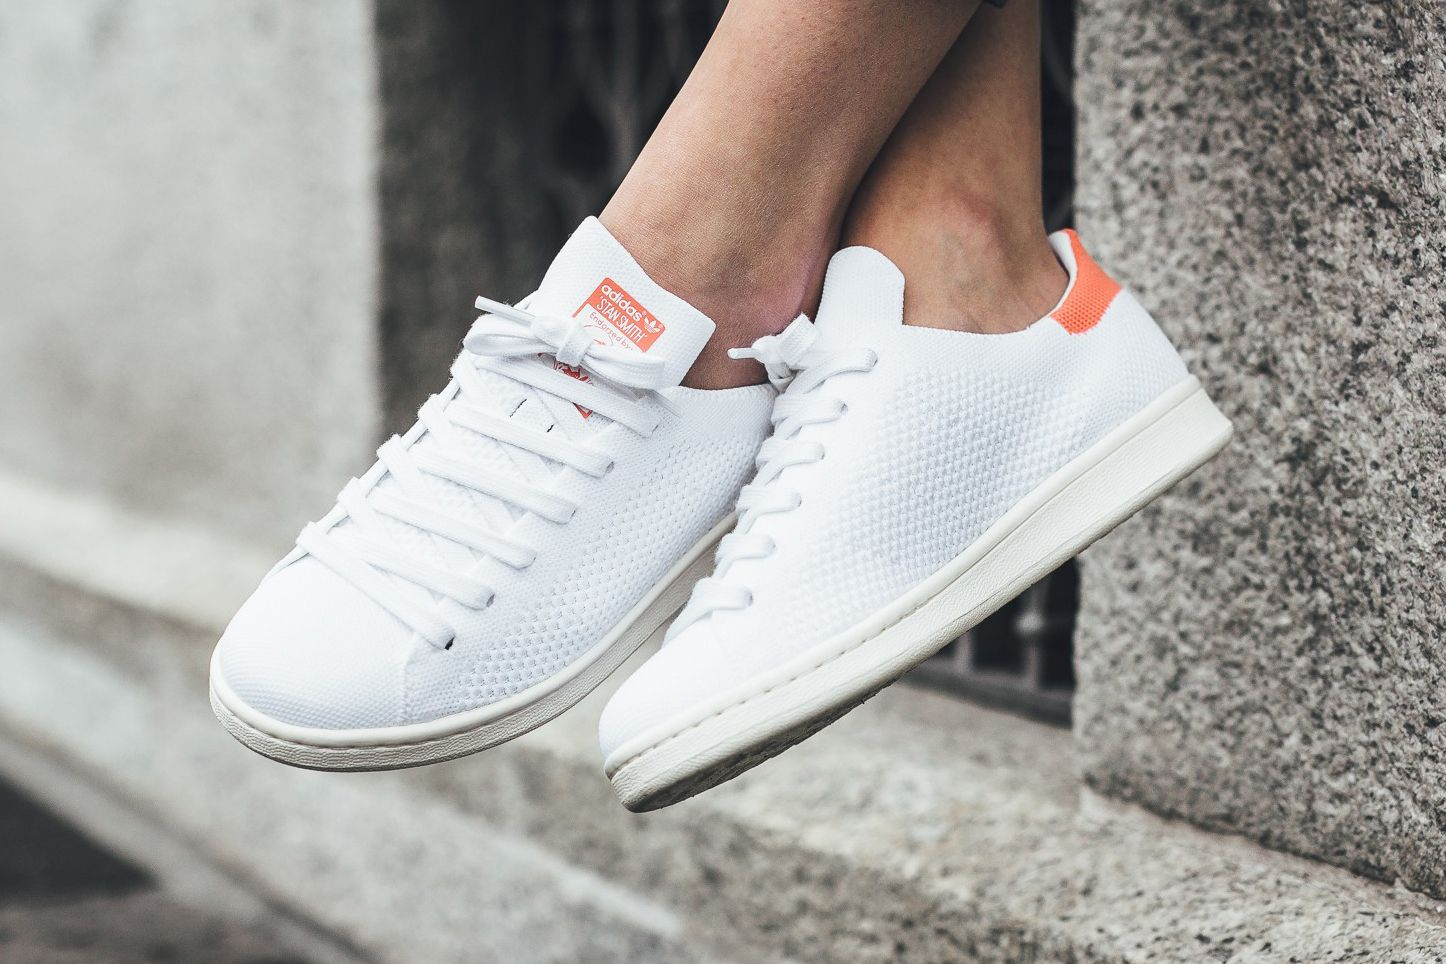 62887581 adidas Originals' Stan Smith Primeknit Gets a Dose of Vitamin C in ...